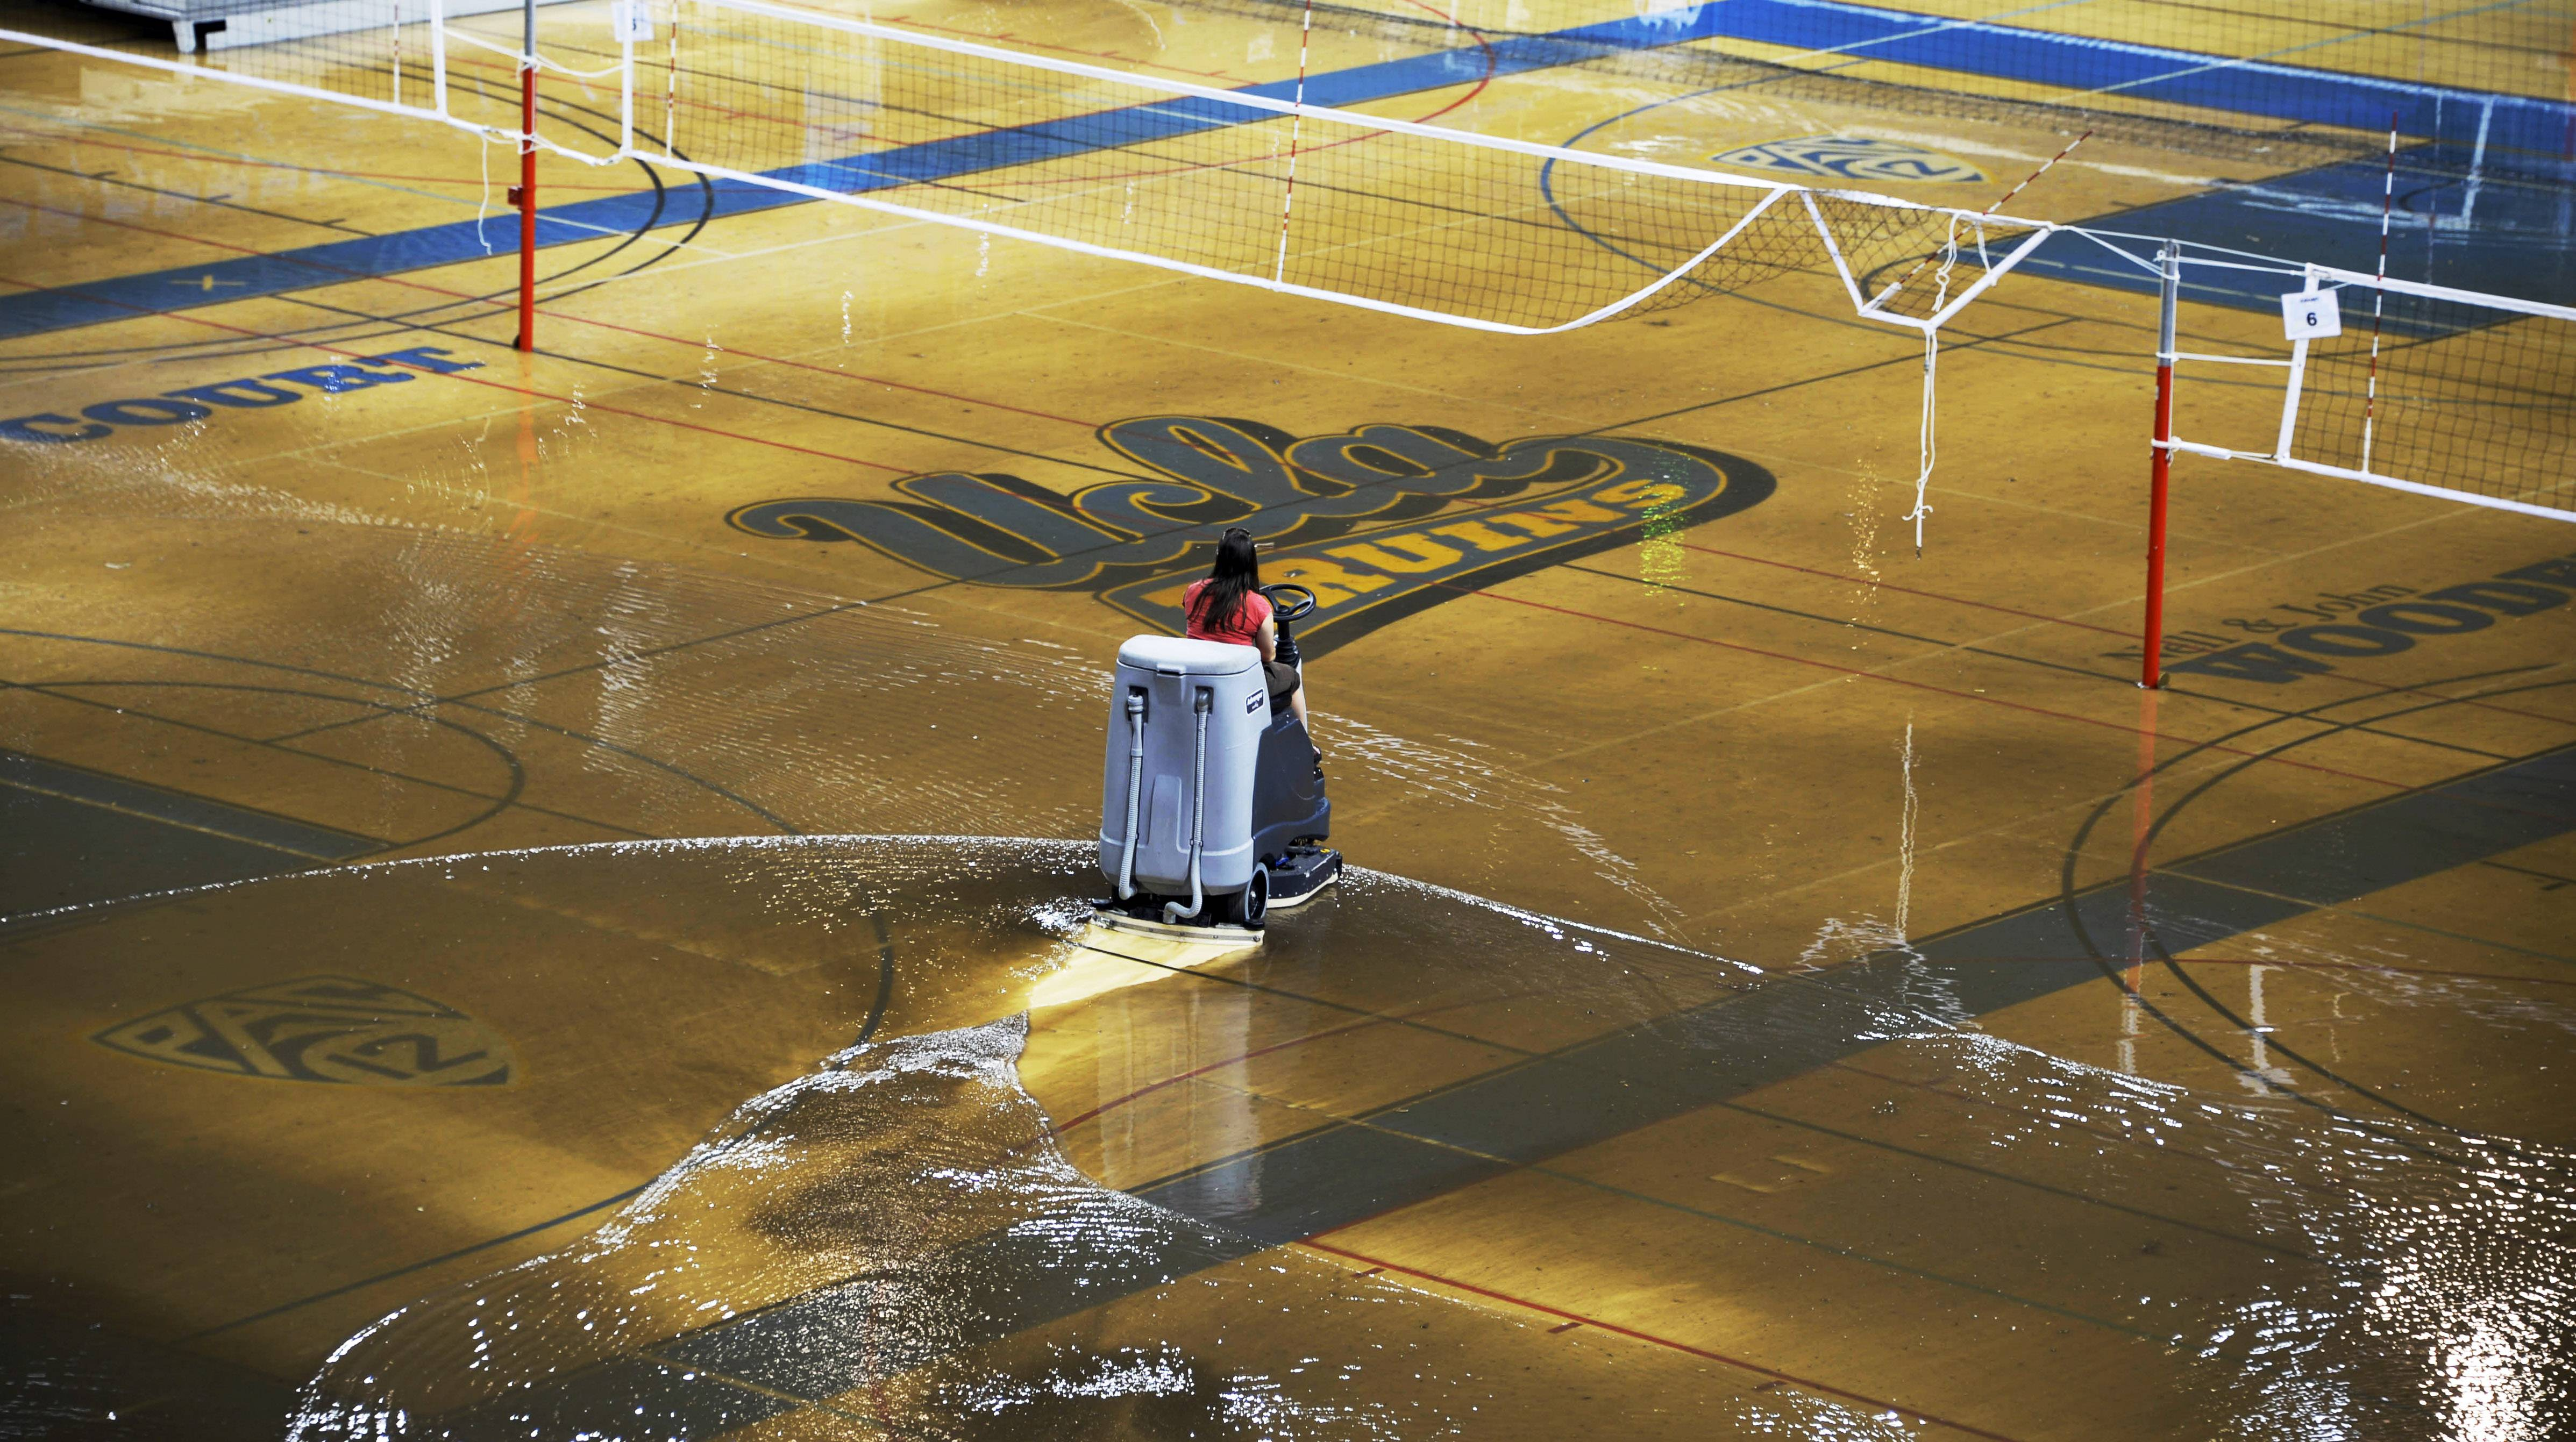 A worker begins the task of cleaning up at least an inch of water covering the playing floor at Pauley Pavilion, home of UCLA basketball, after a broken 30-inch water main under nearby Sunset Boulevard caused flooding Tuesday that inundated several areas of the UCLA campus in the Westwood section of Los Angeles.